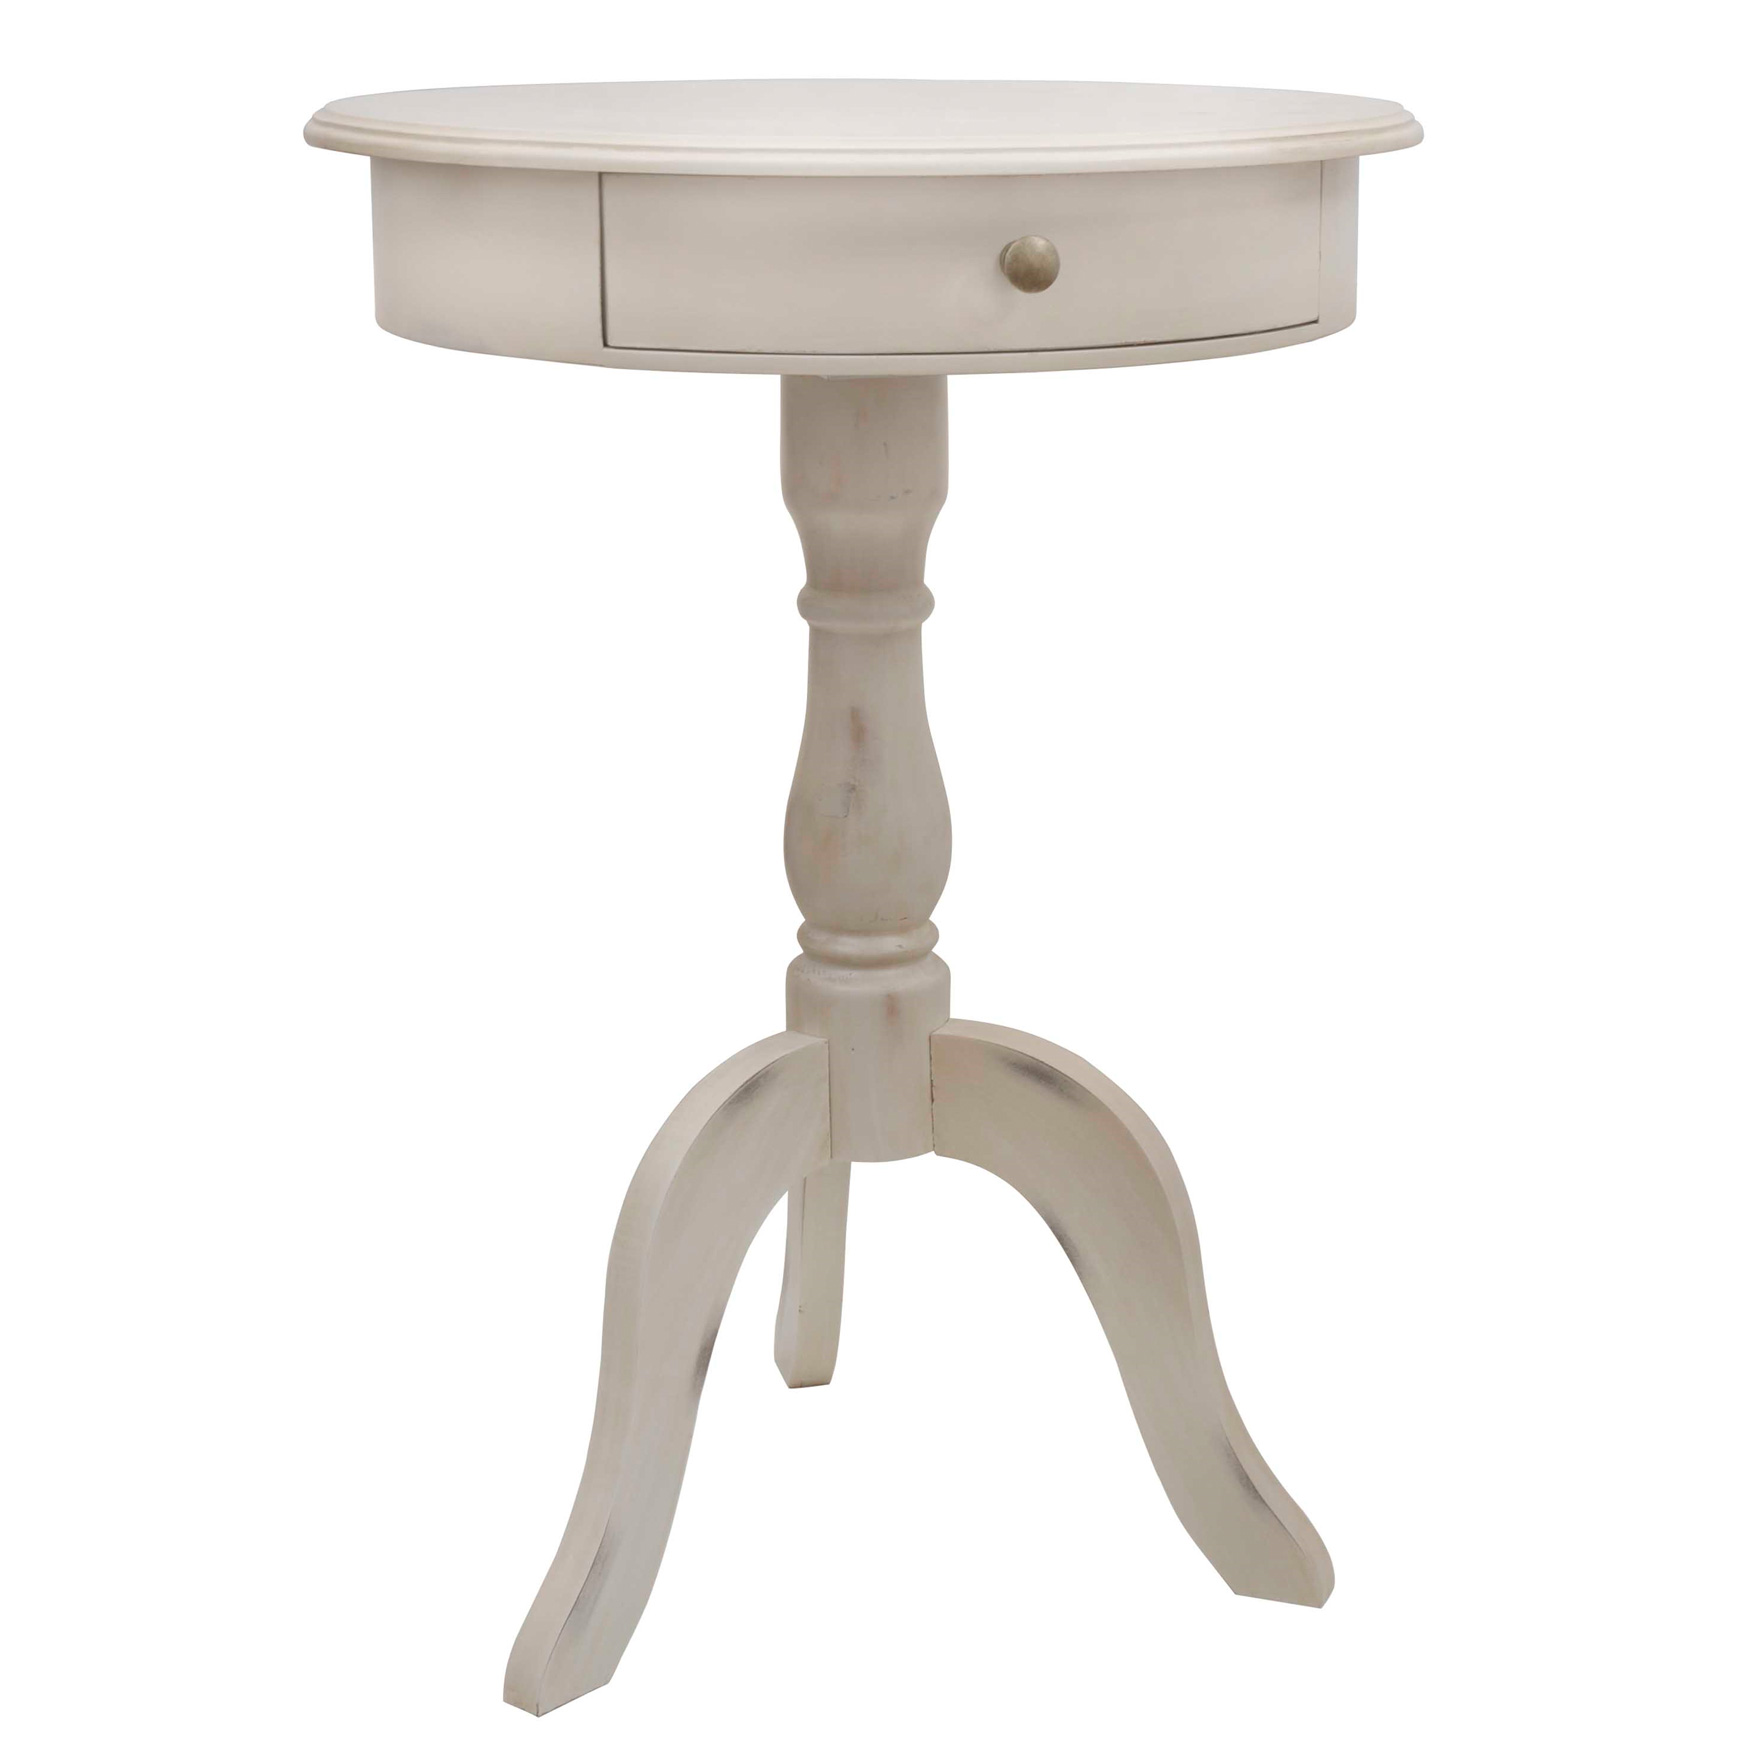 Pedestal Table with Drawer, ANTIQUE WHITE